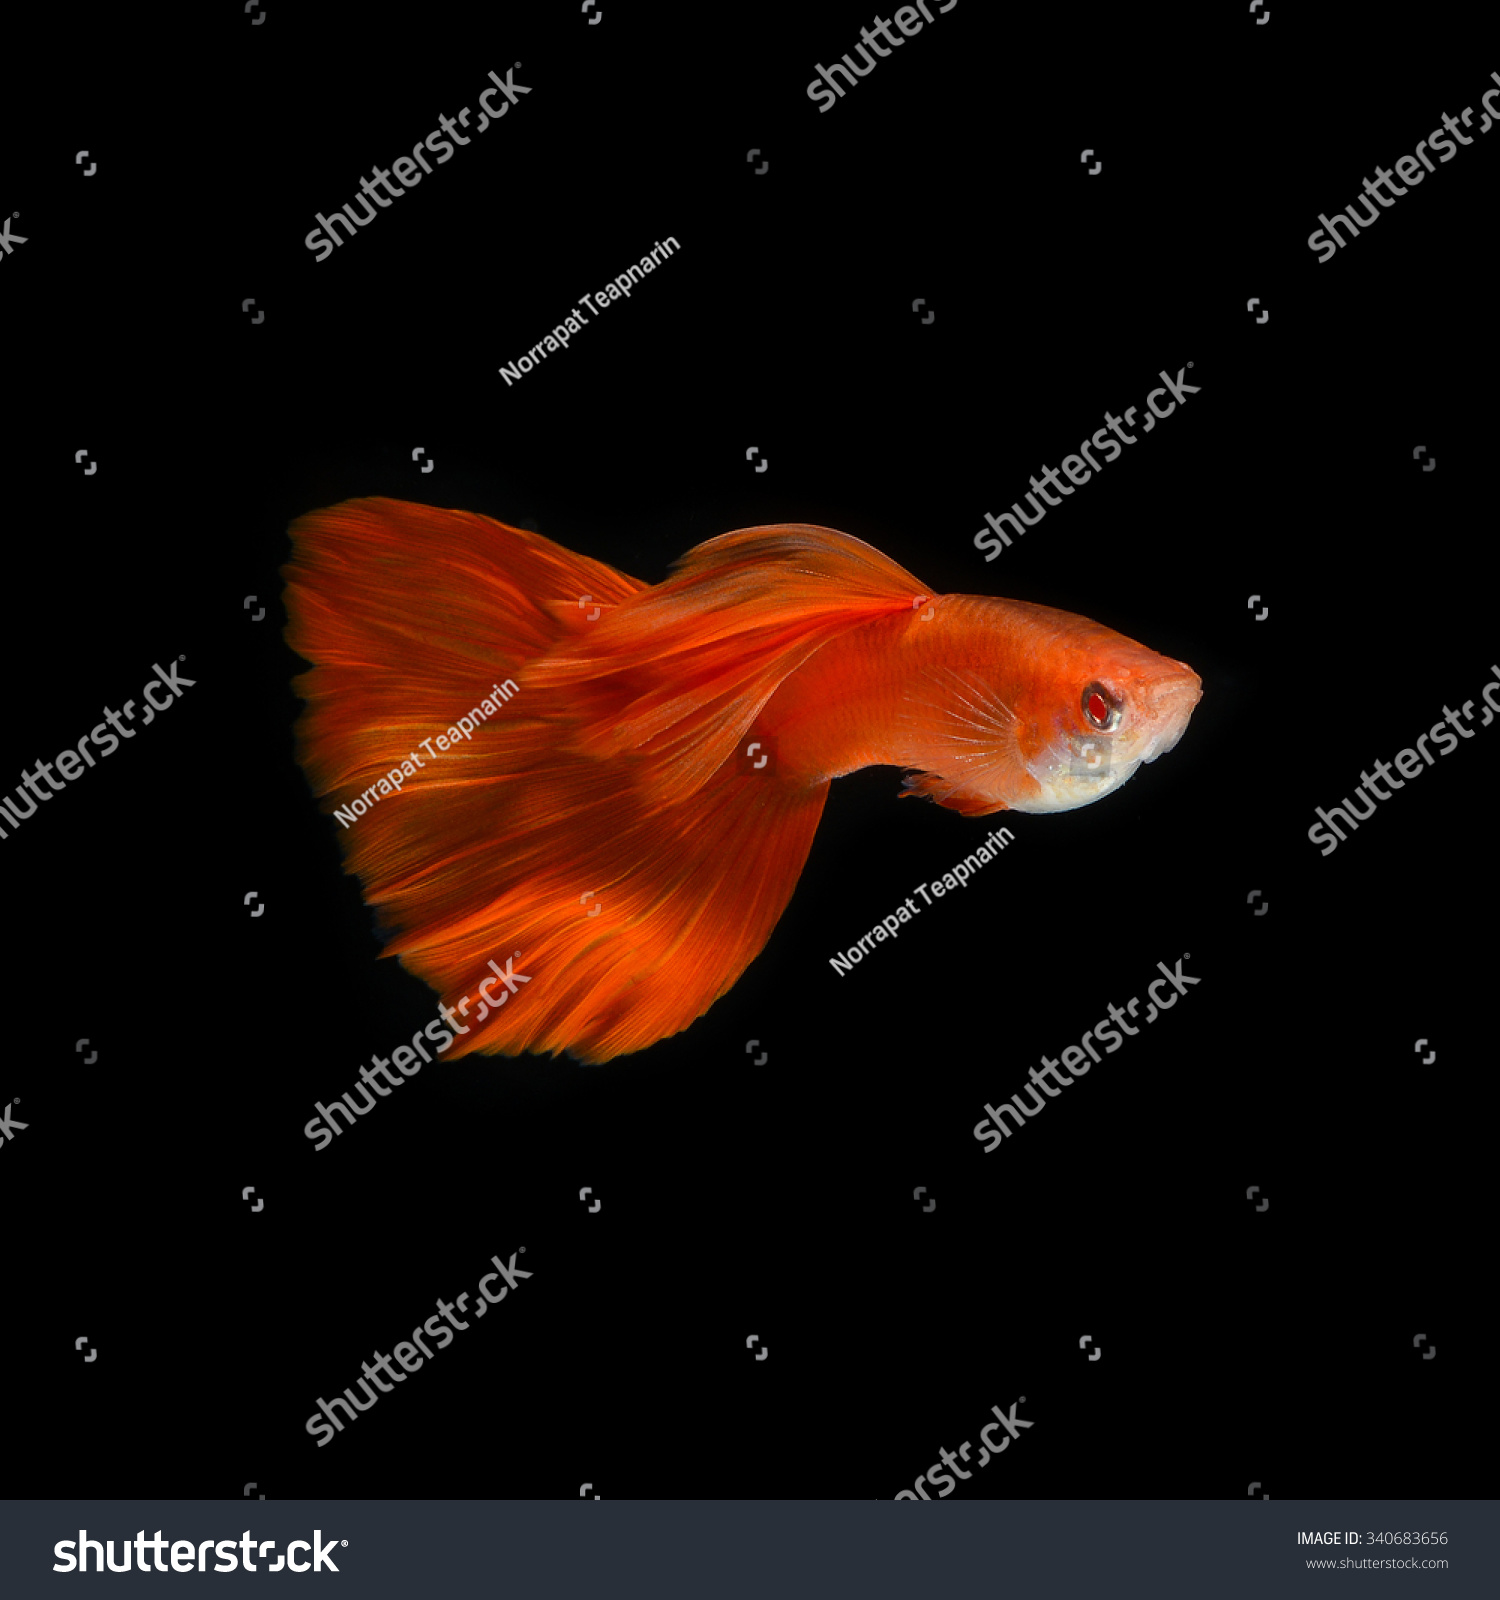 Super Red Guppy Guppy Multi Colored Fishin Stock Photo (Royalty Free ...